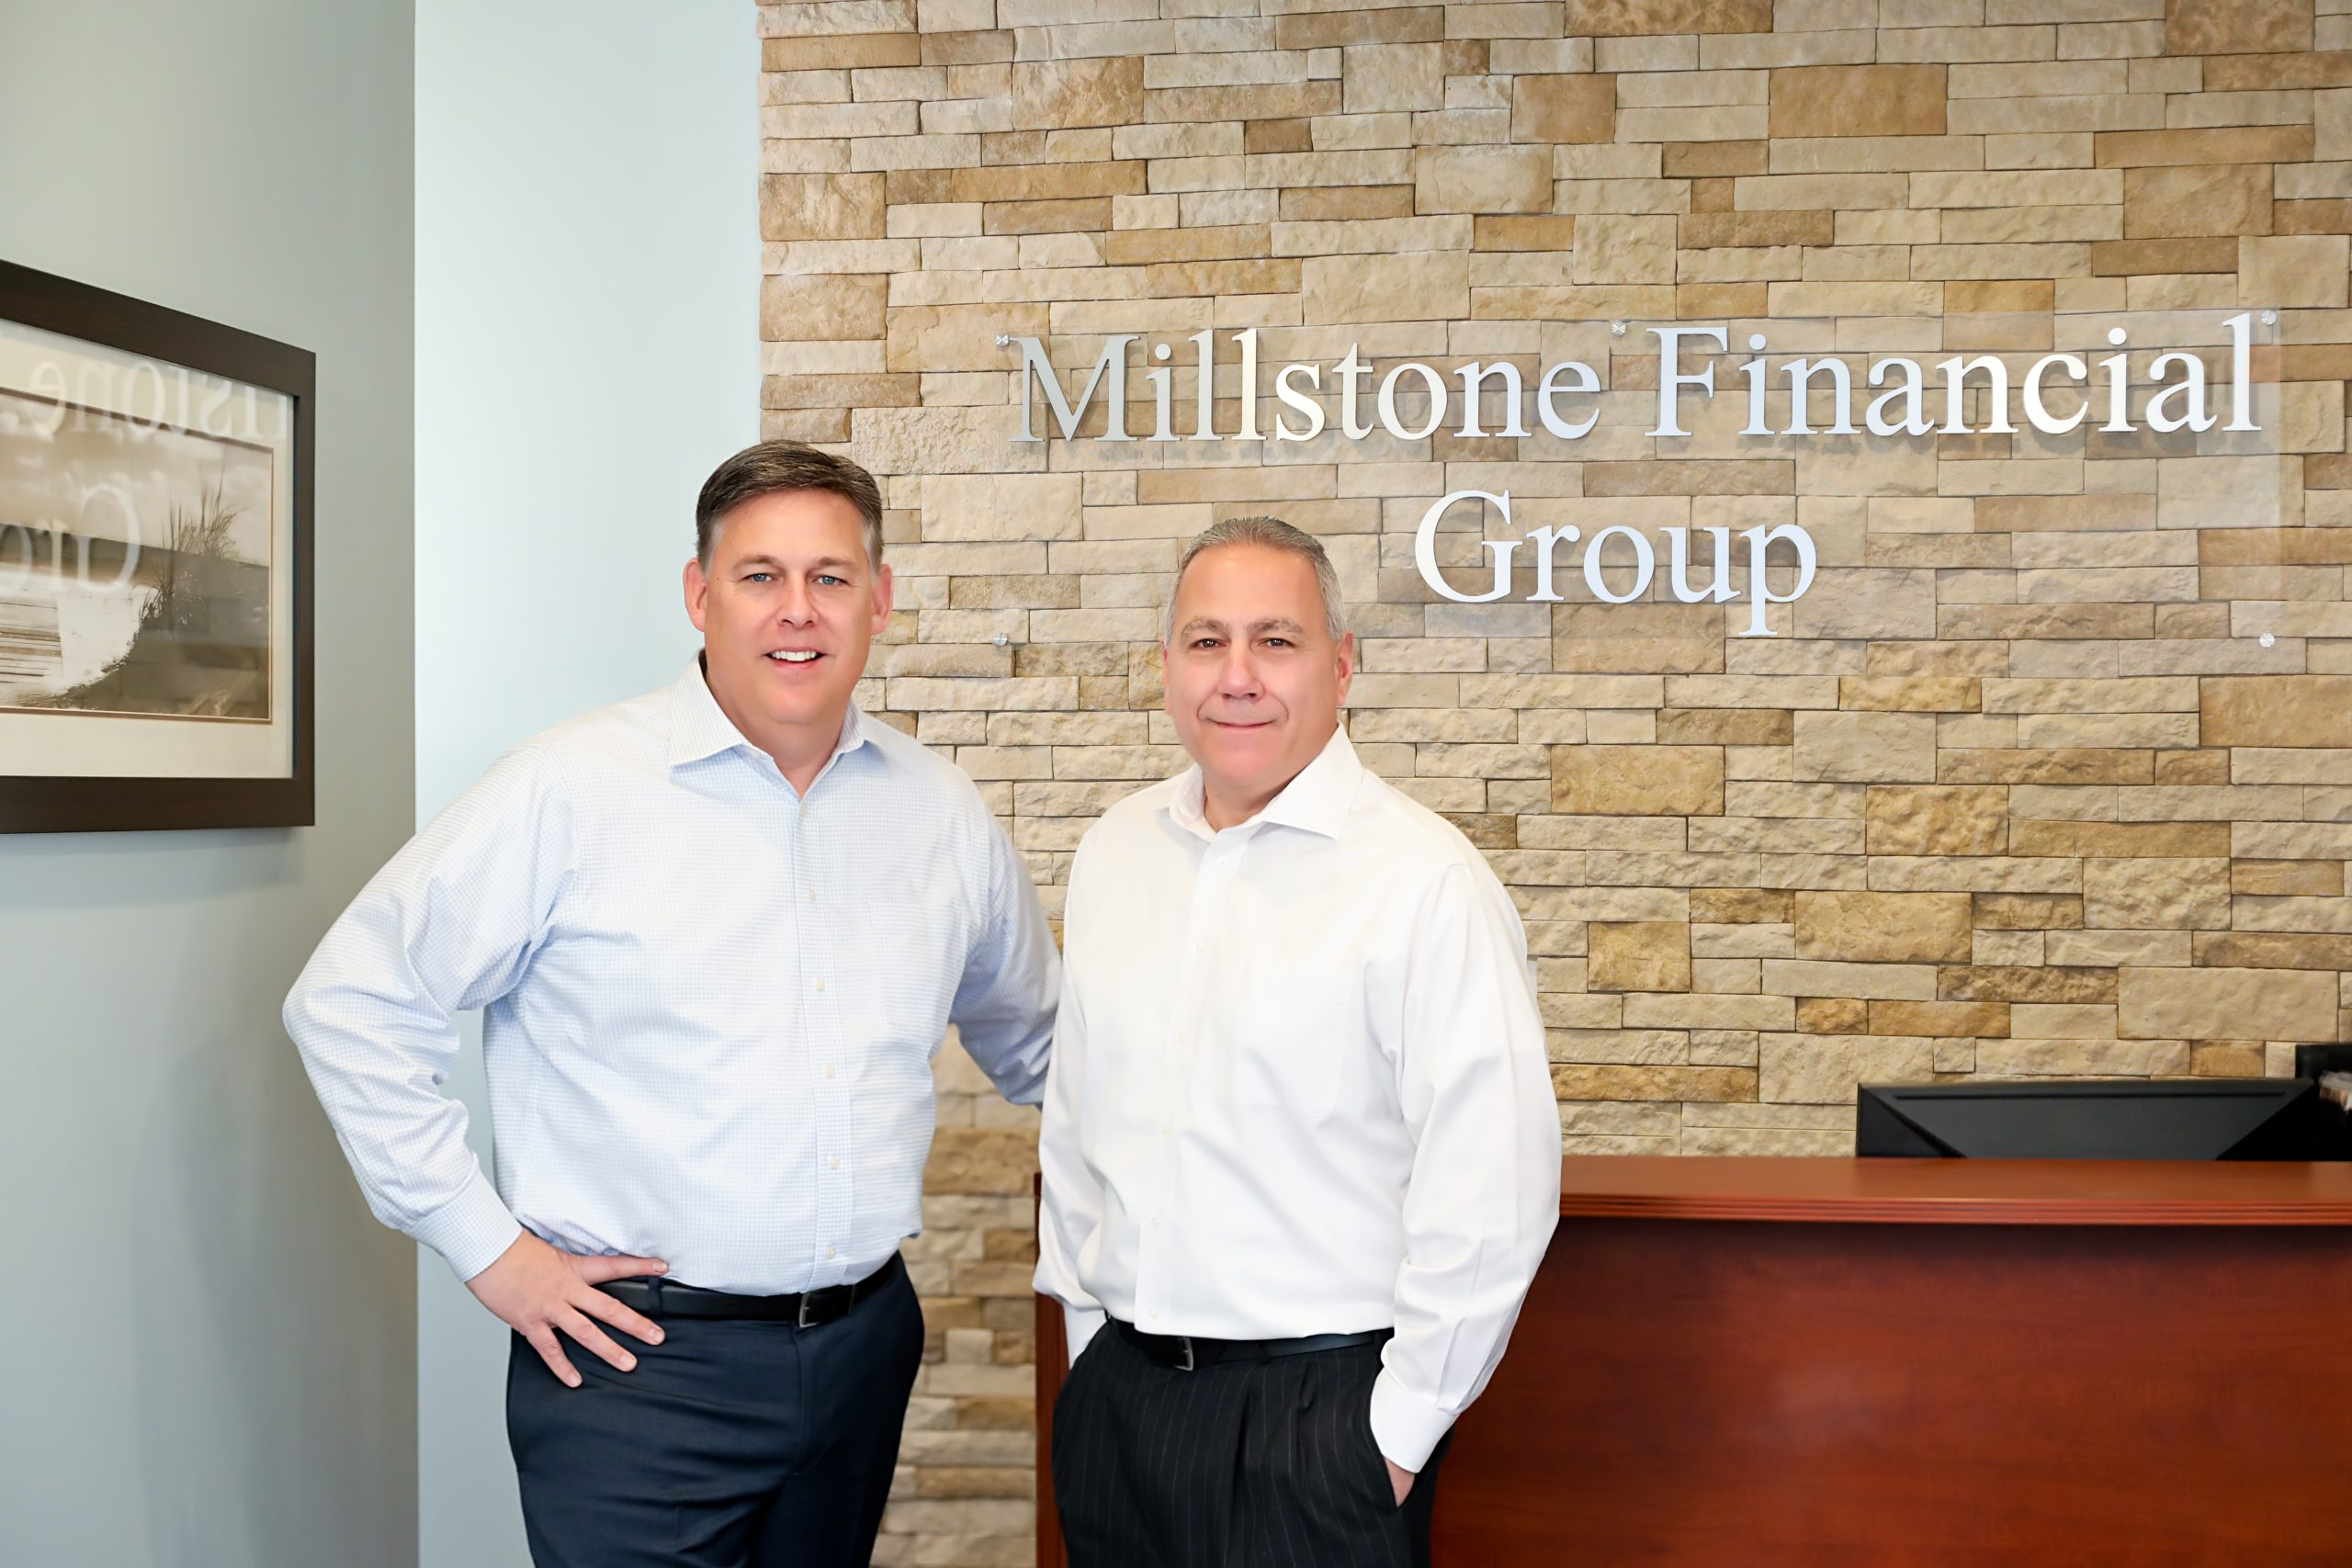 Contact Millstone Financial Group - Retirement & Wealth Management